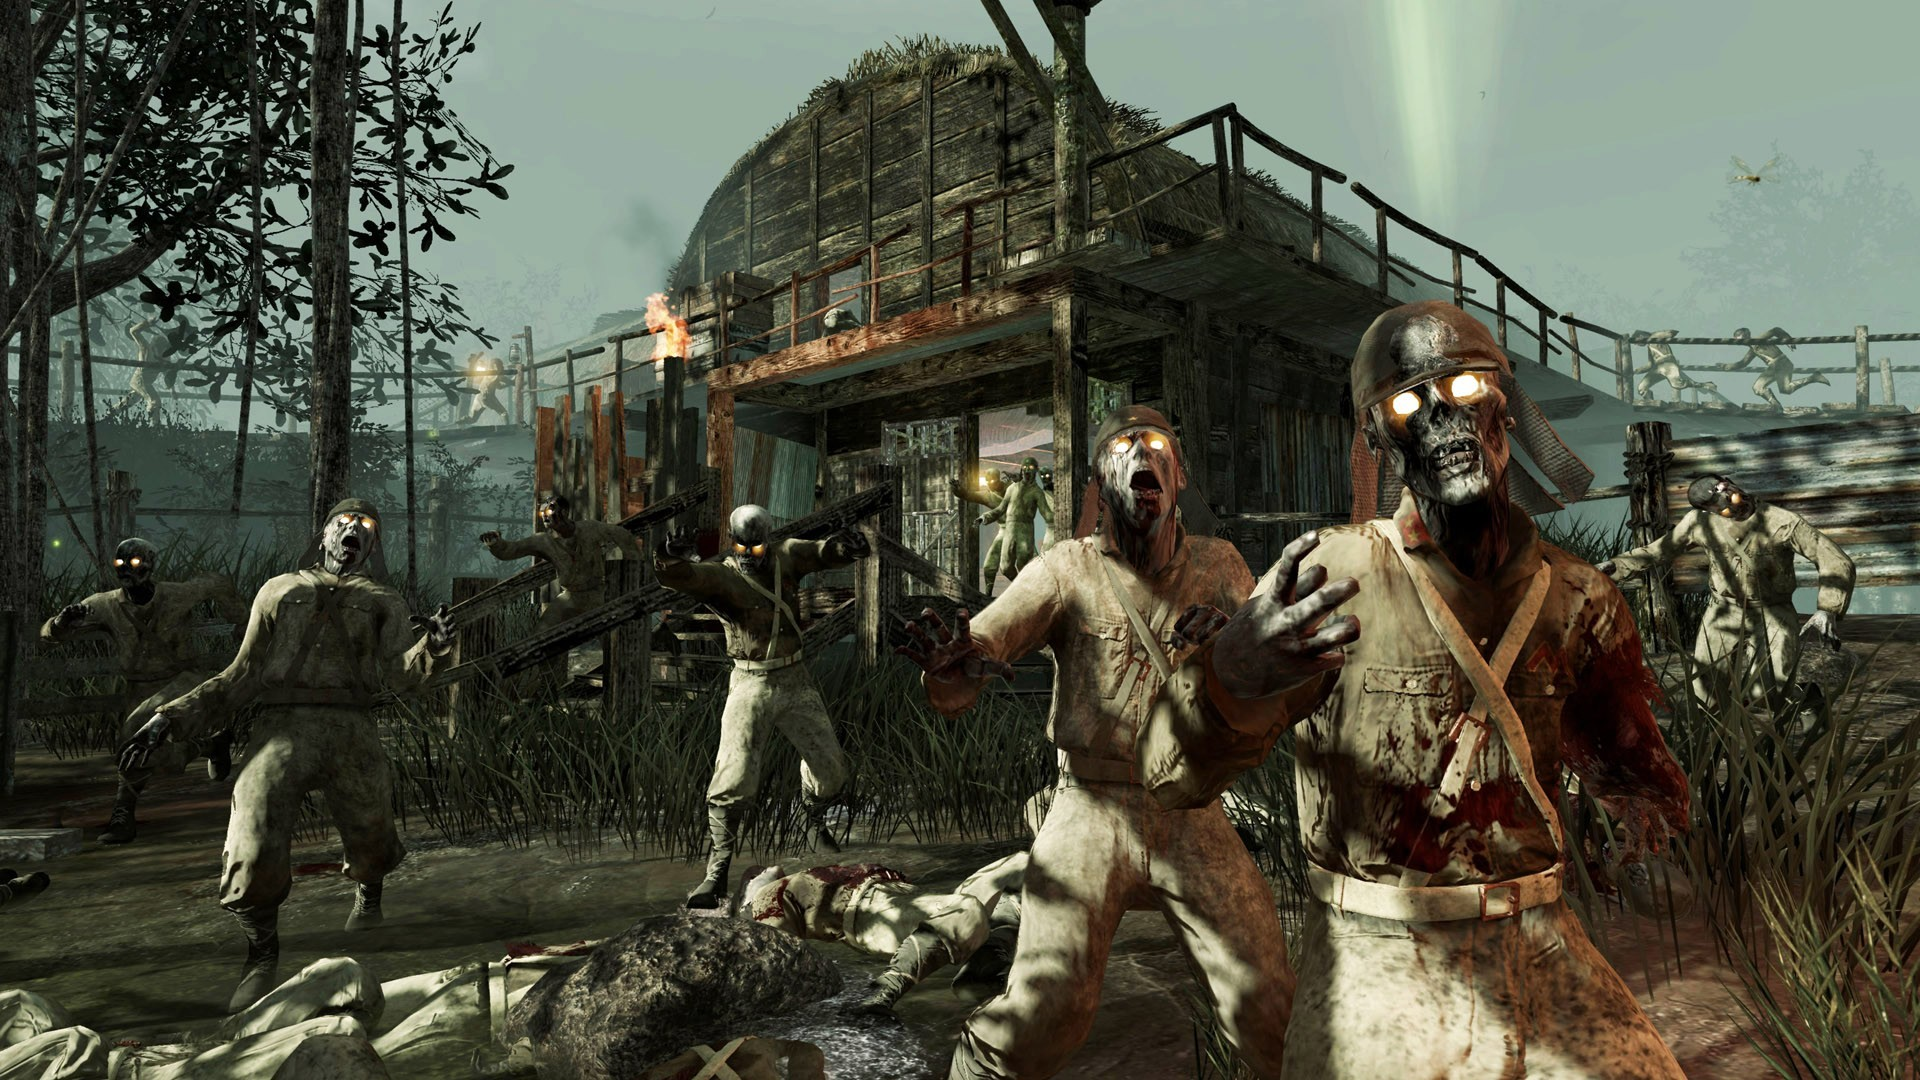 awesome-call-of-duty-zombies-wallpaper-1593-1731-